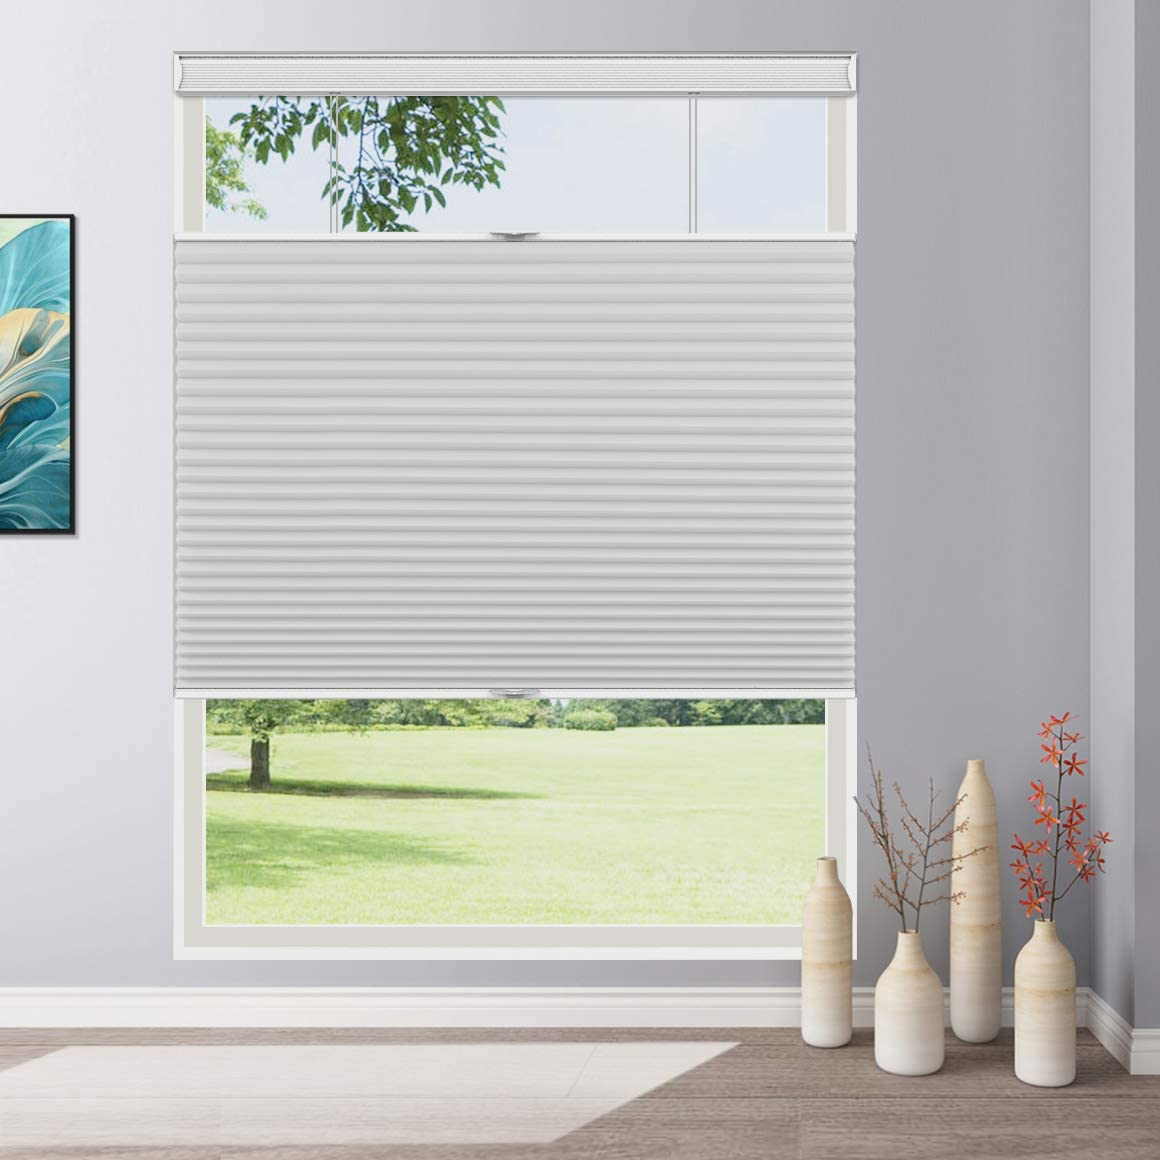 Keego Cordless Cellular Shades Top Down Bottom Up Blackout Custom Cut To Size Room Darkening Honeycomb Blinds For Home Office Window White 19 3 4 Wide X 36 High Window Treatments Blinds Shades